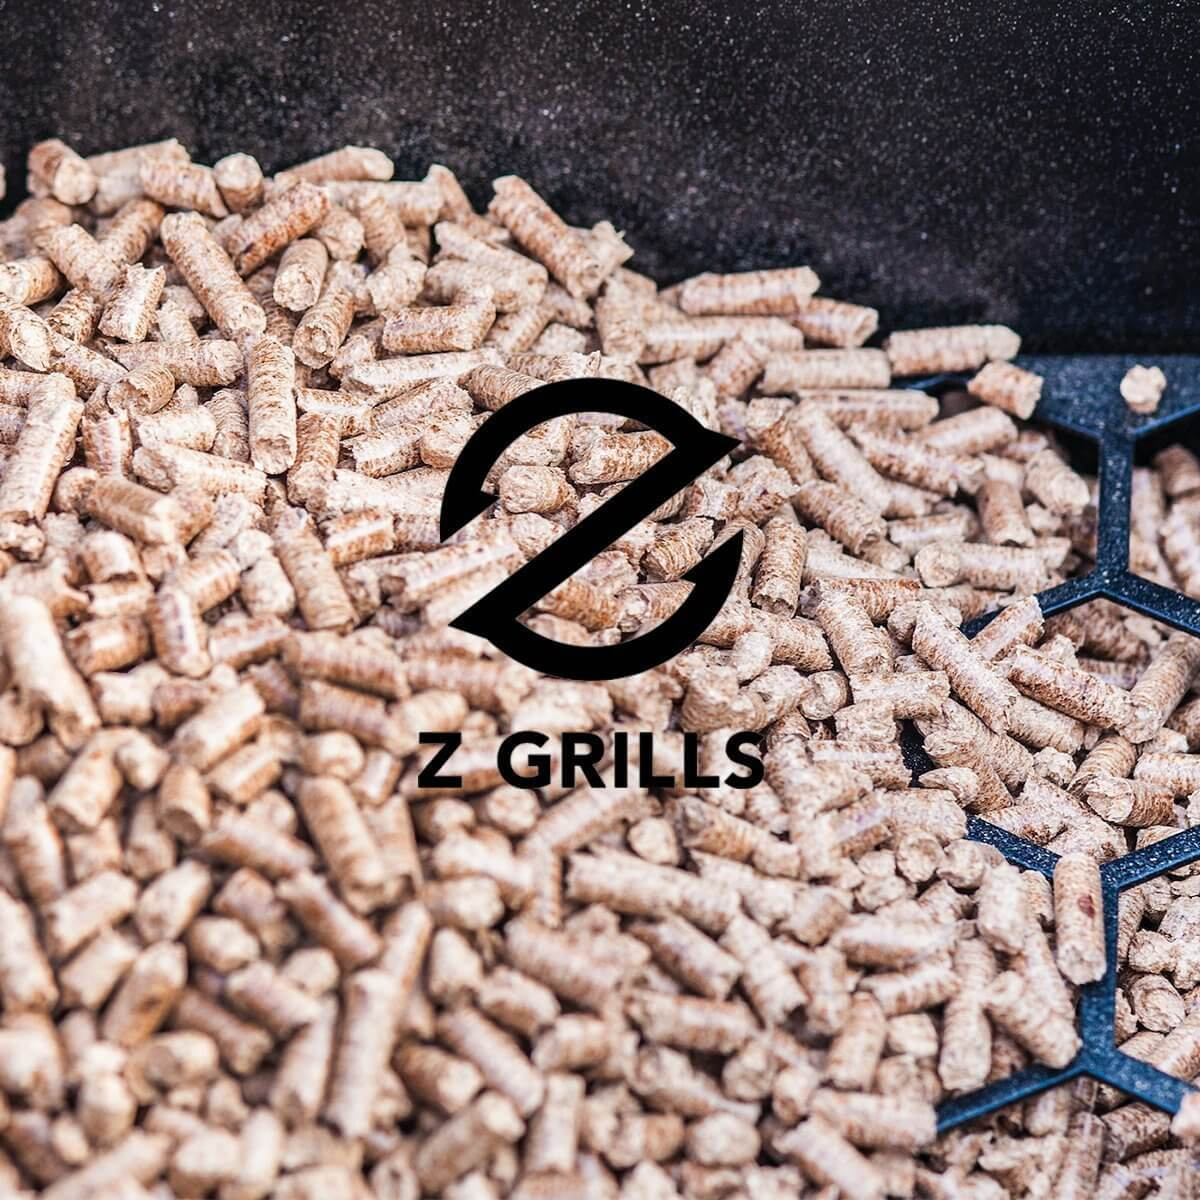 Z Grills Wood Pellet Bbq Grill And Smoker Bbq Grill People